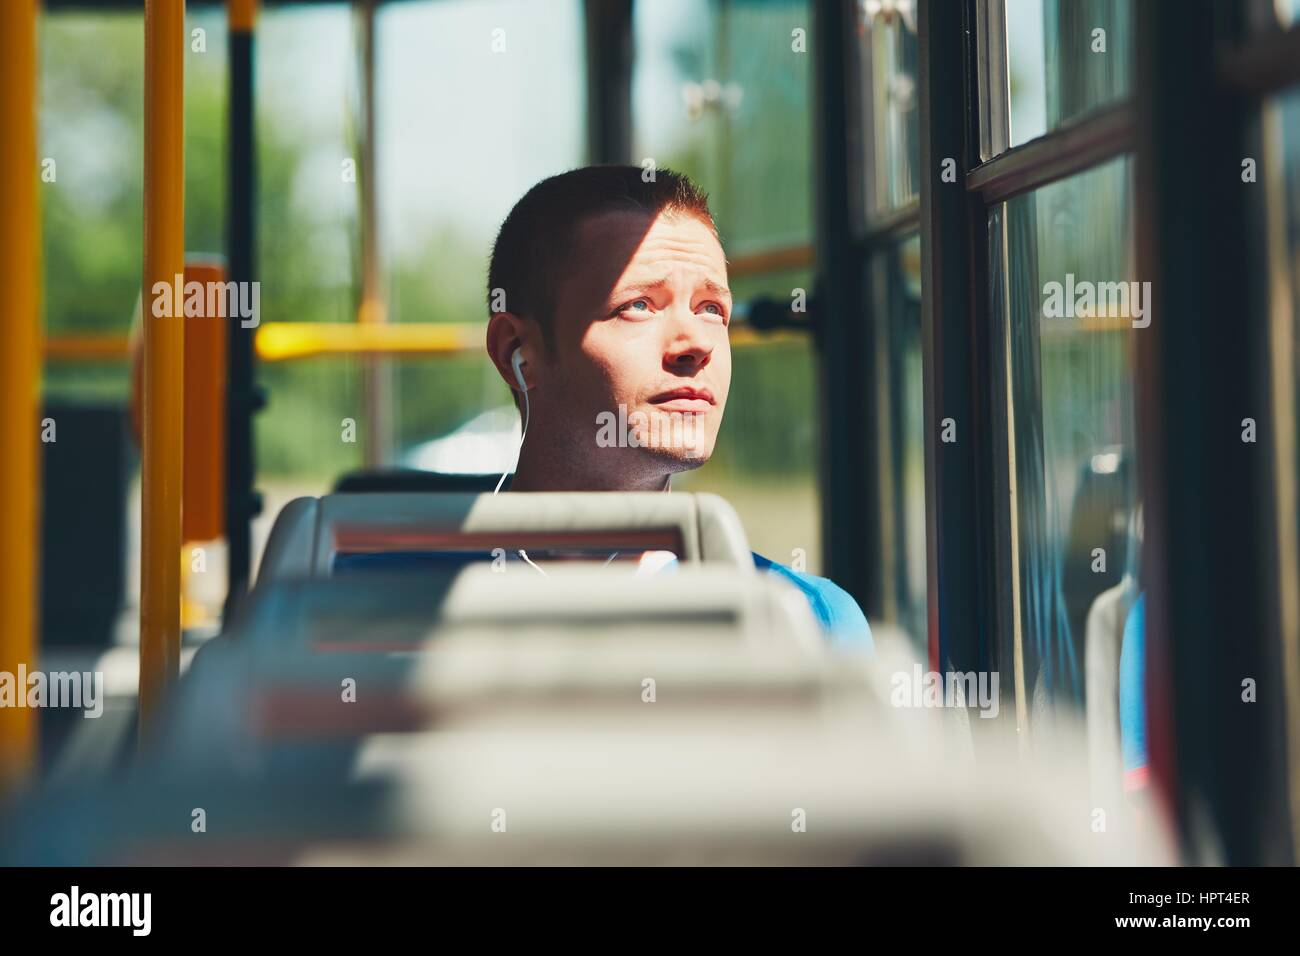 Everyday life and commuting to work by public transportation. Handsome young man is traveling by tram. - Stock Image